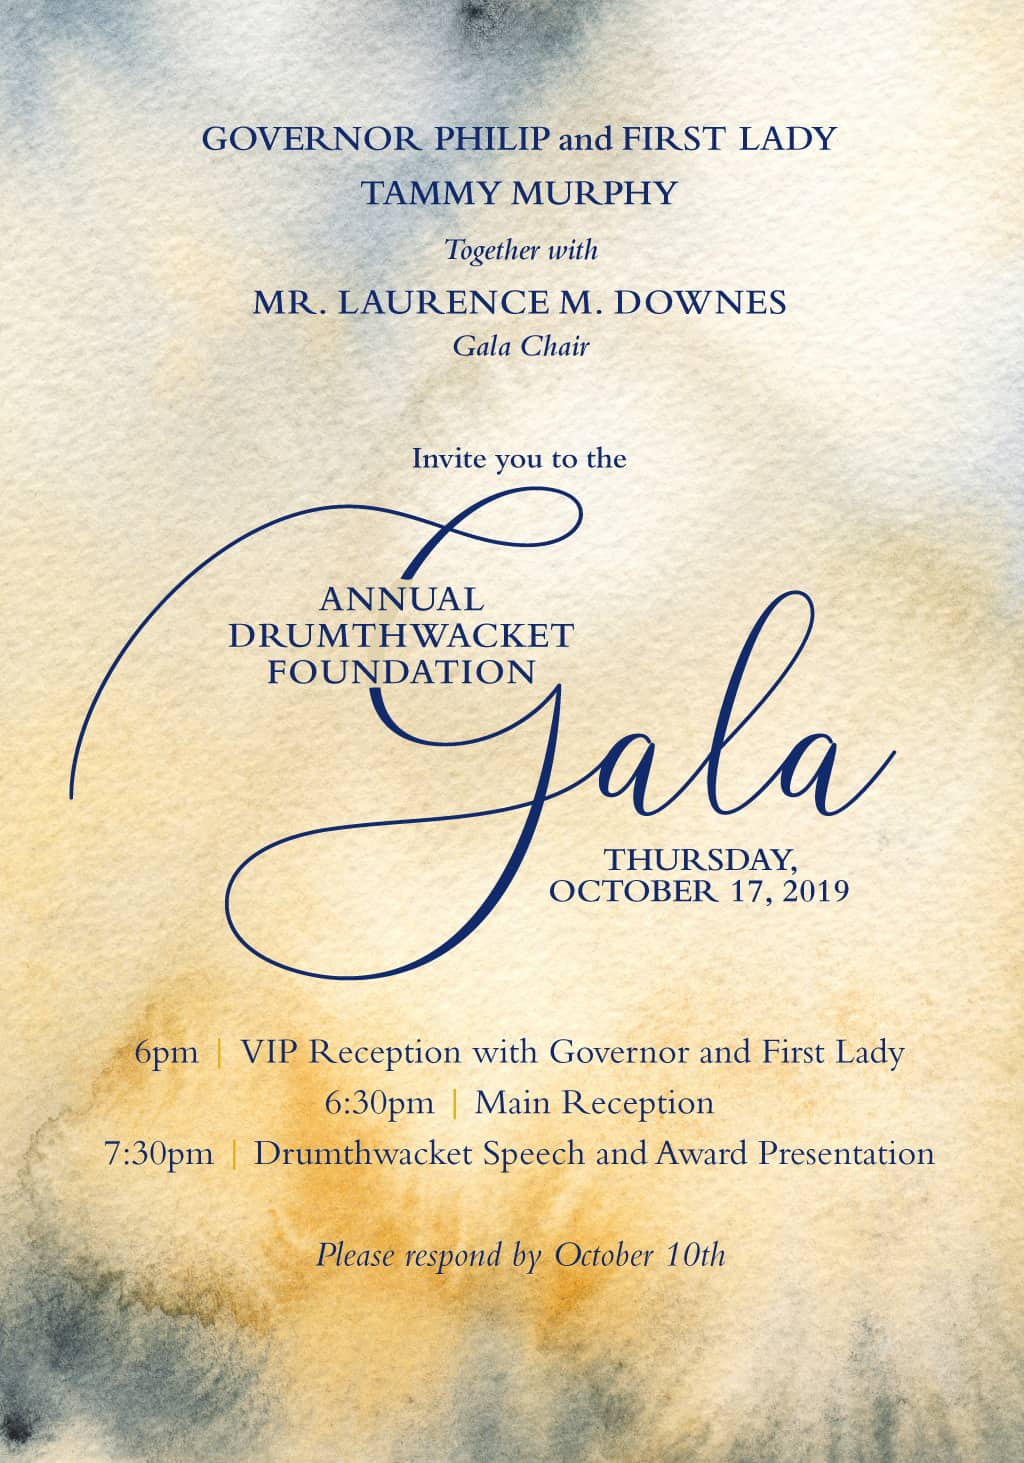 Governor Philip and First Lady Tammy Murphy together with Mr. Laurence M. Downes, Gala Chair, invite you to the Annual Drumthwacket Foundation Gala on Thursday October 17, 2019.